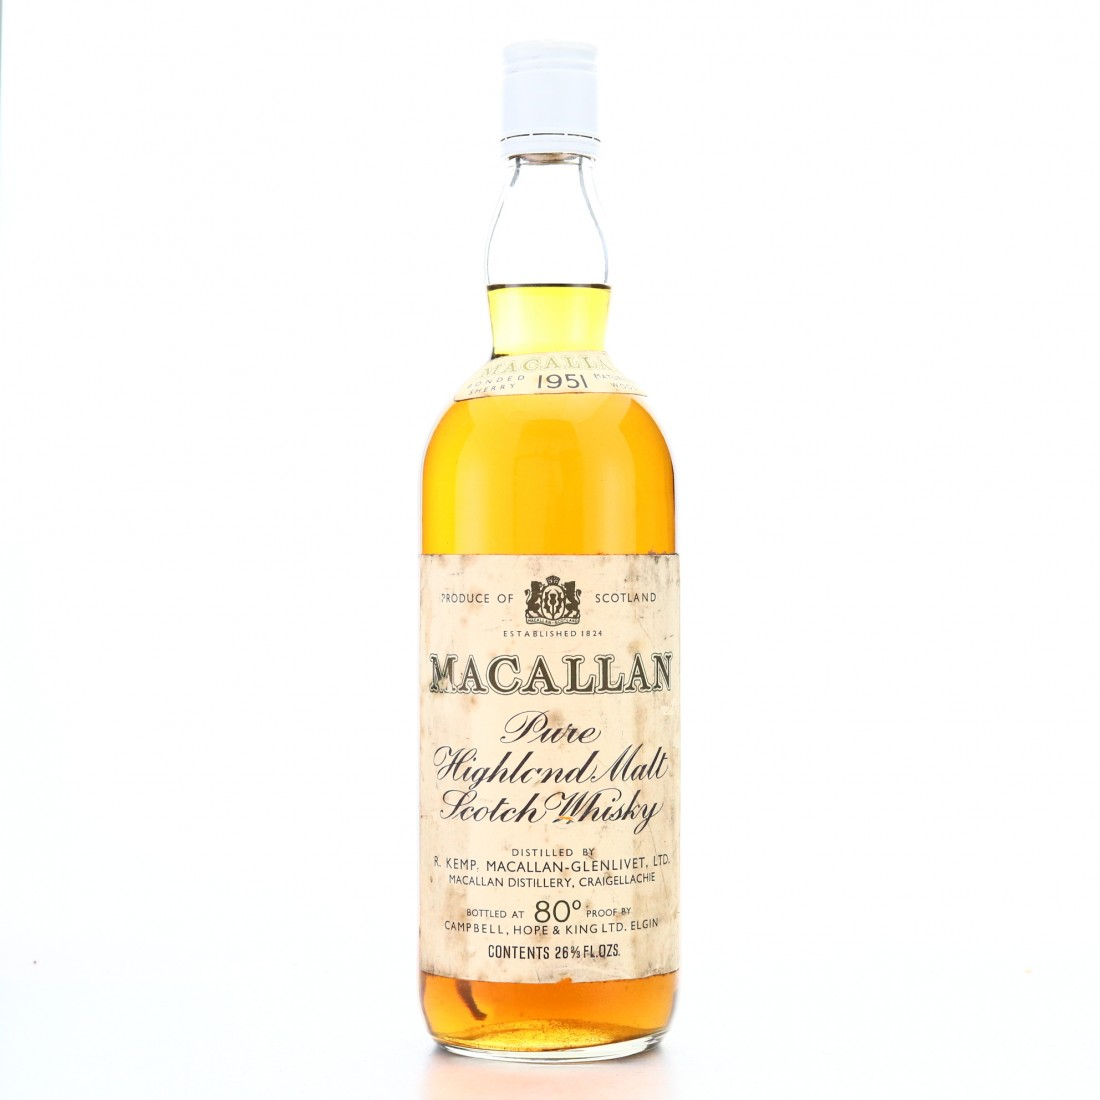 Macallan 1951 Campbell, Hope and King 80 Proof